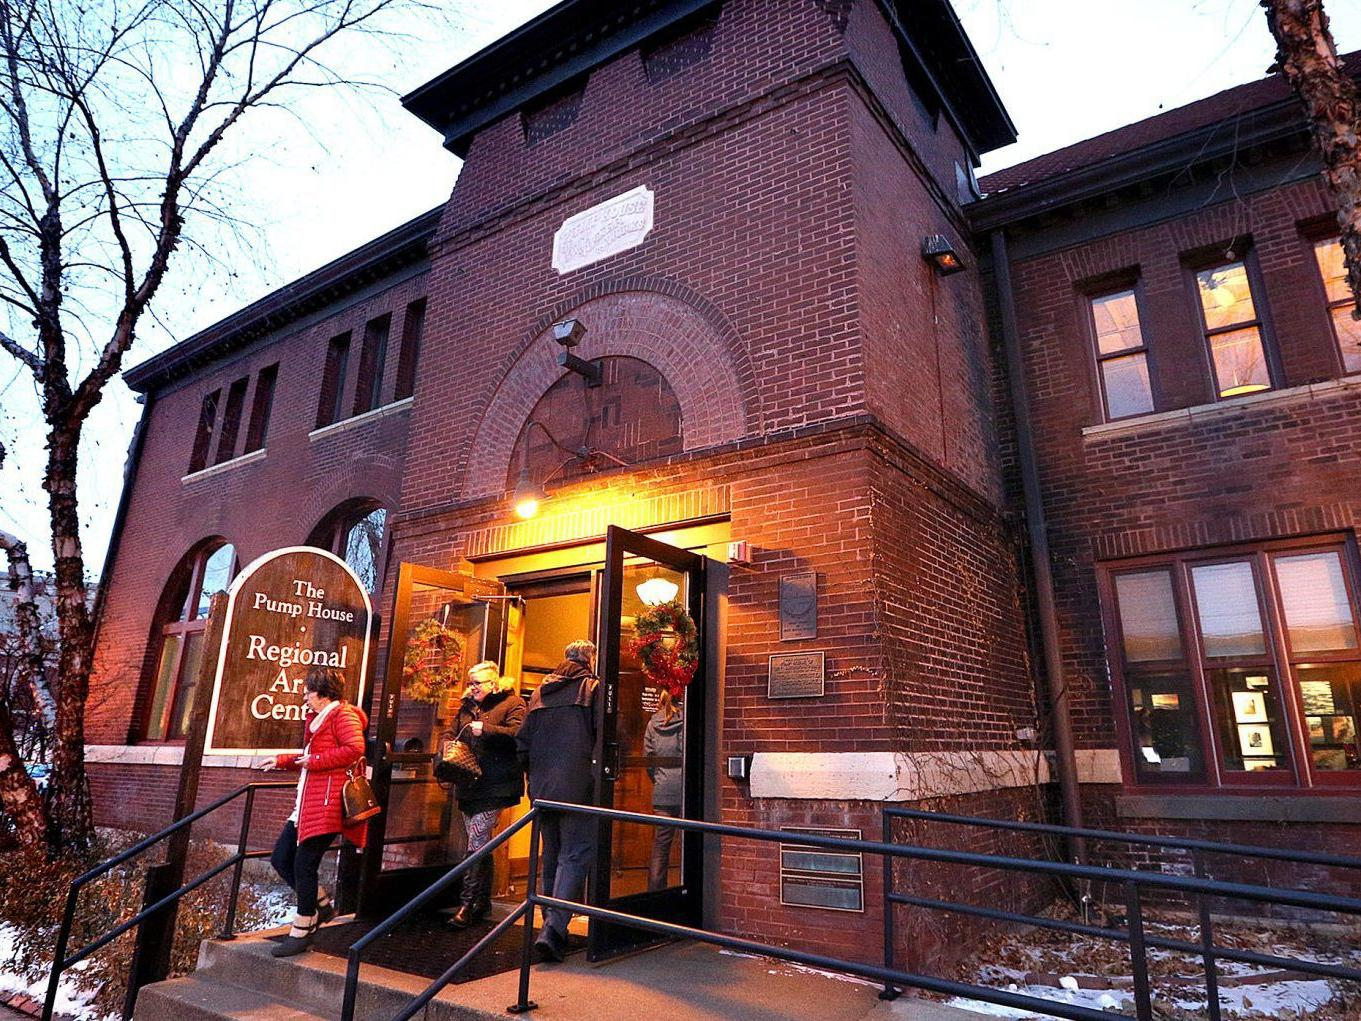 At 40 Pump House In La Crosse Aims To Be On The Cutting Edge Of Art Entertainment Lacrossetribune Com